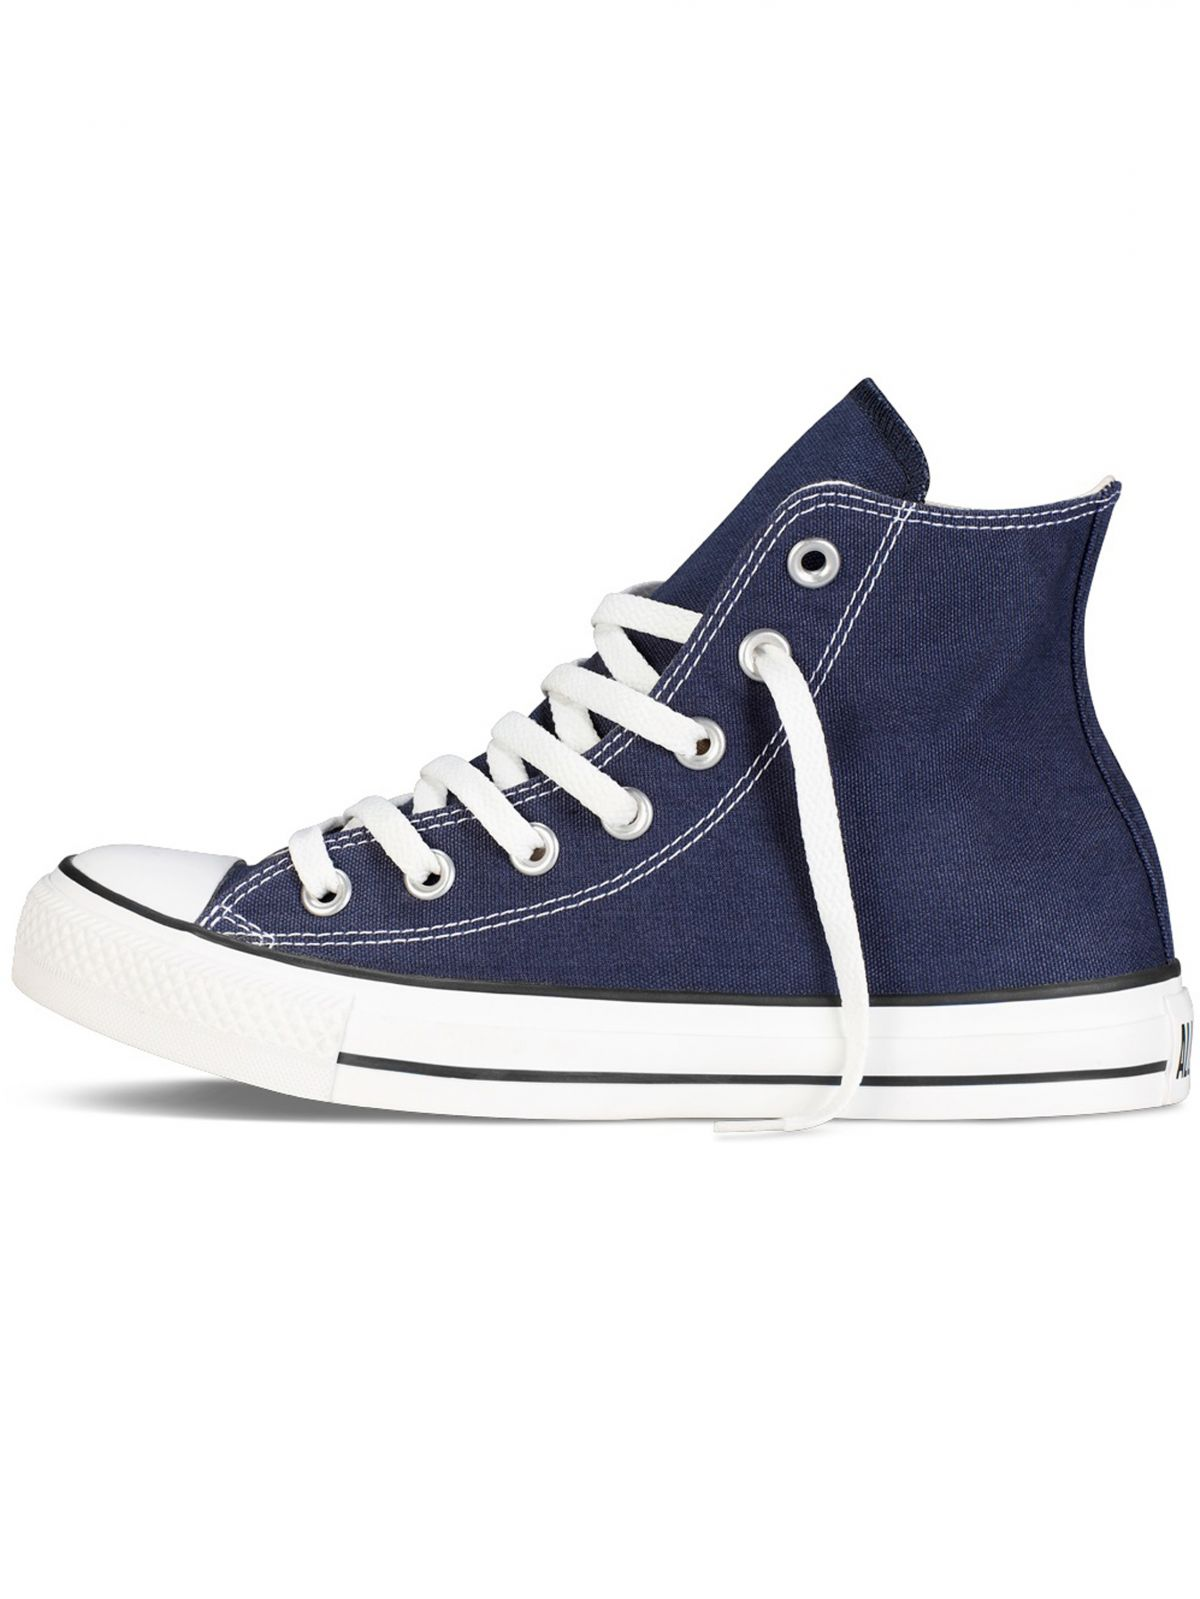 Clearance | Converse All Star Unisex Chuck Taylor High Top Trainers